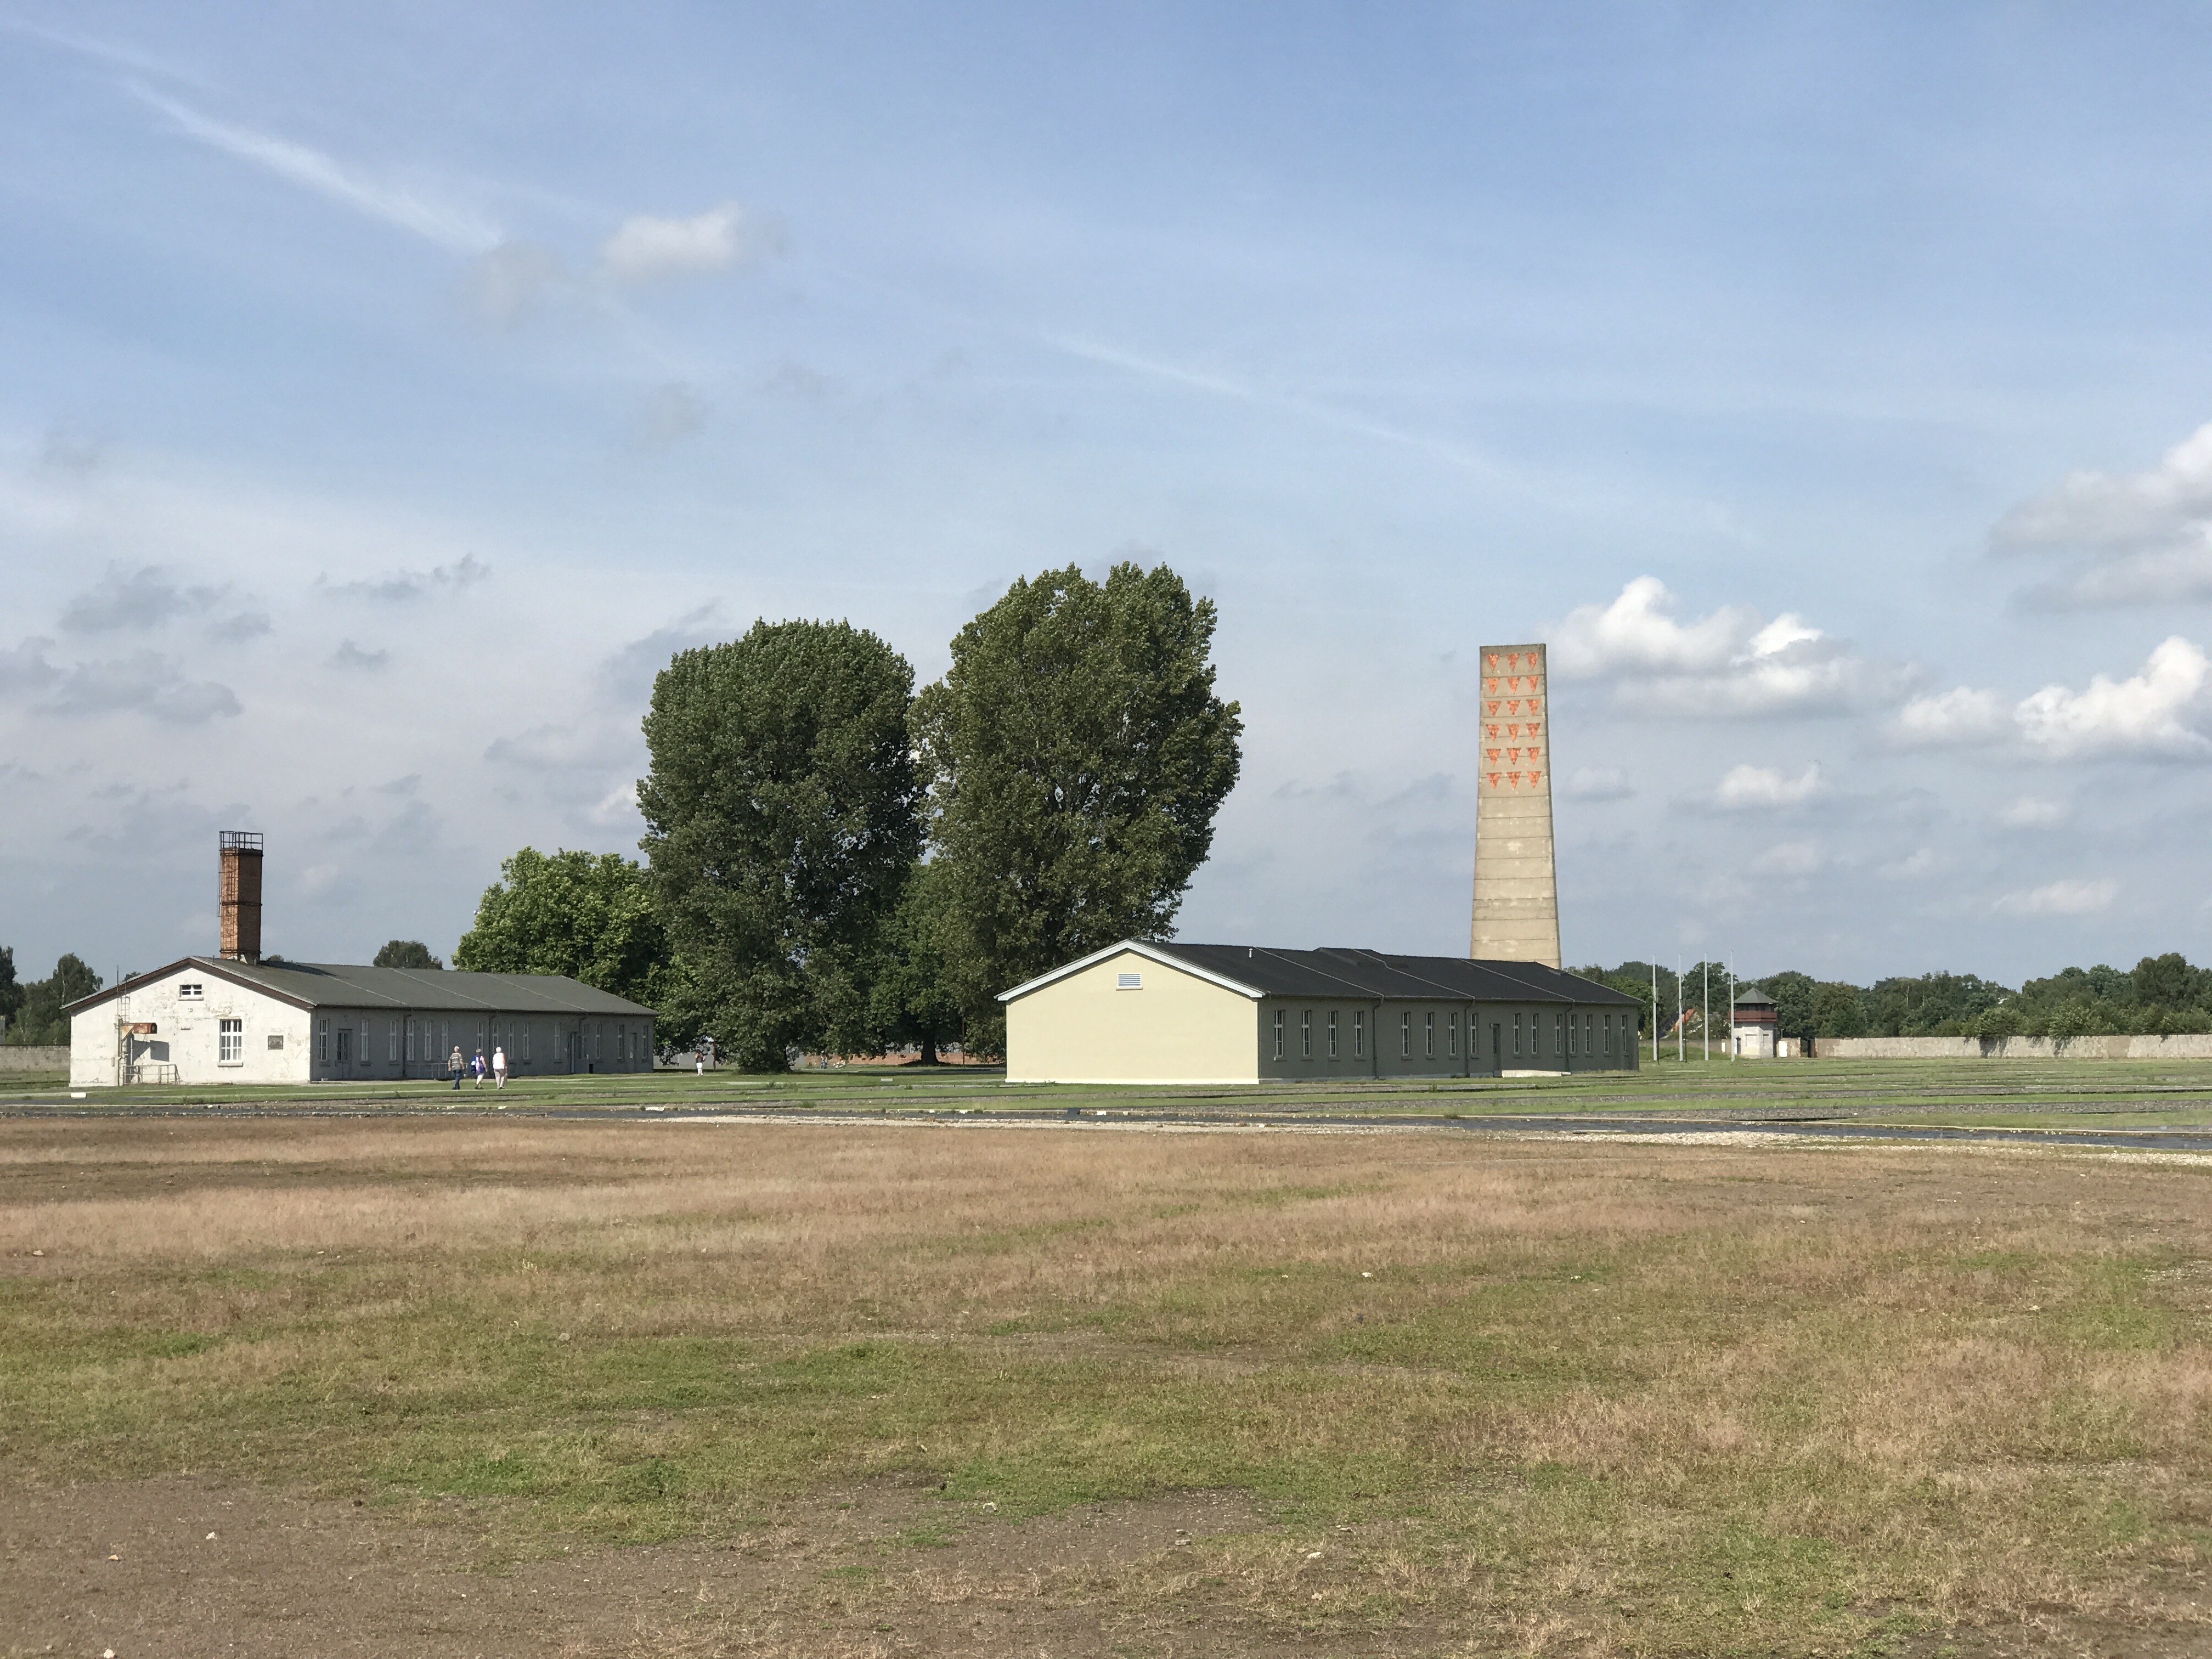 Some of what's remaining still at Sachsenhausen. The tower memorial in the back was actually built by the Soviets when they took over the concentration camp after liberating it from the nazis.